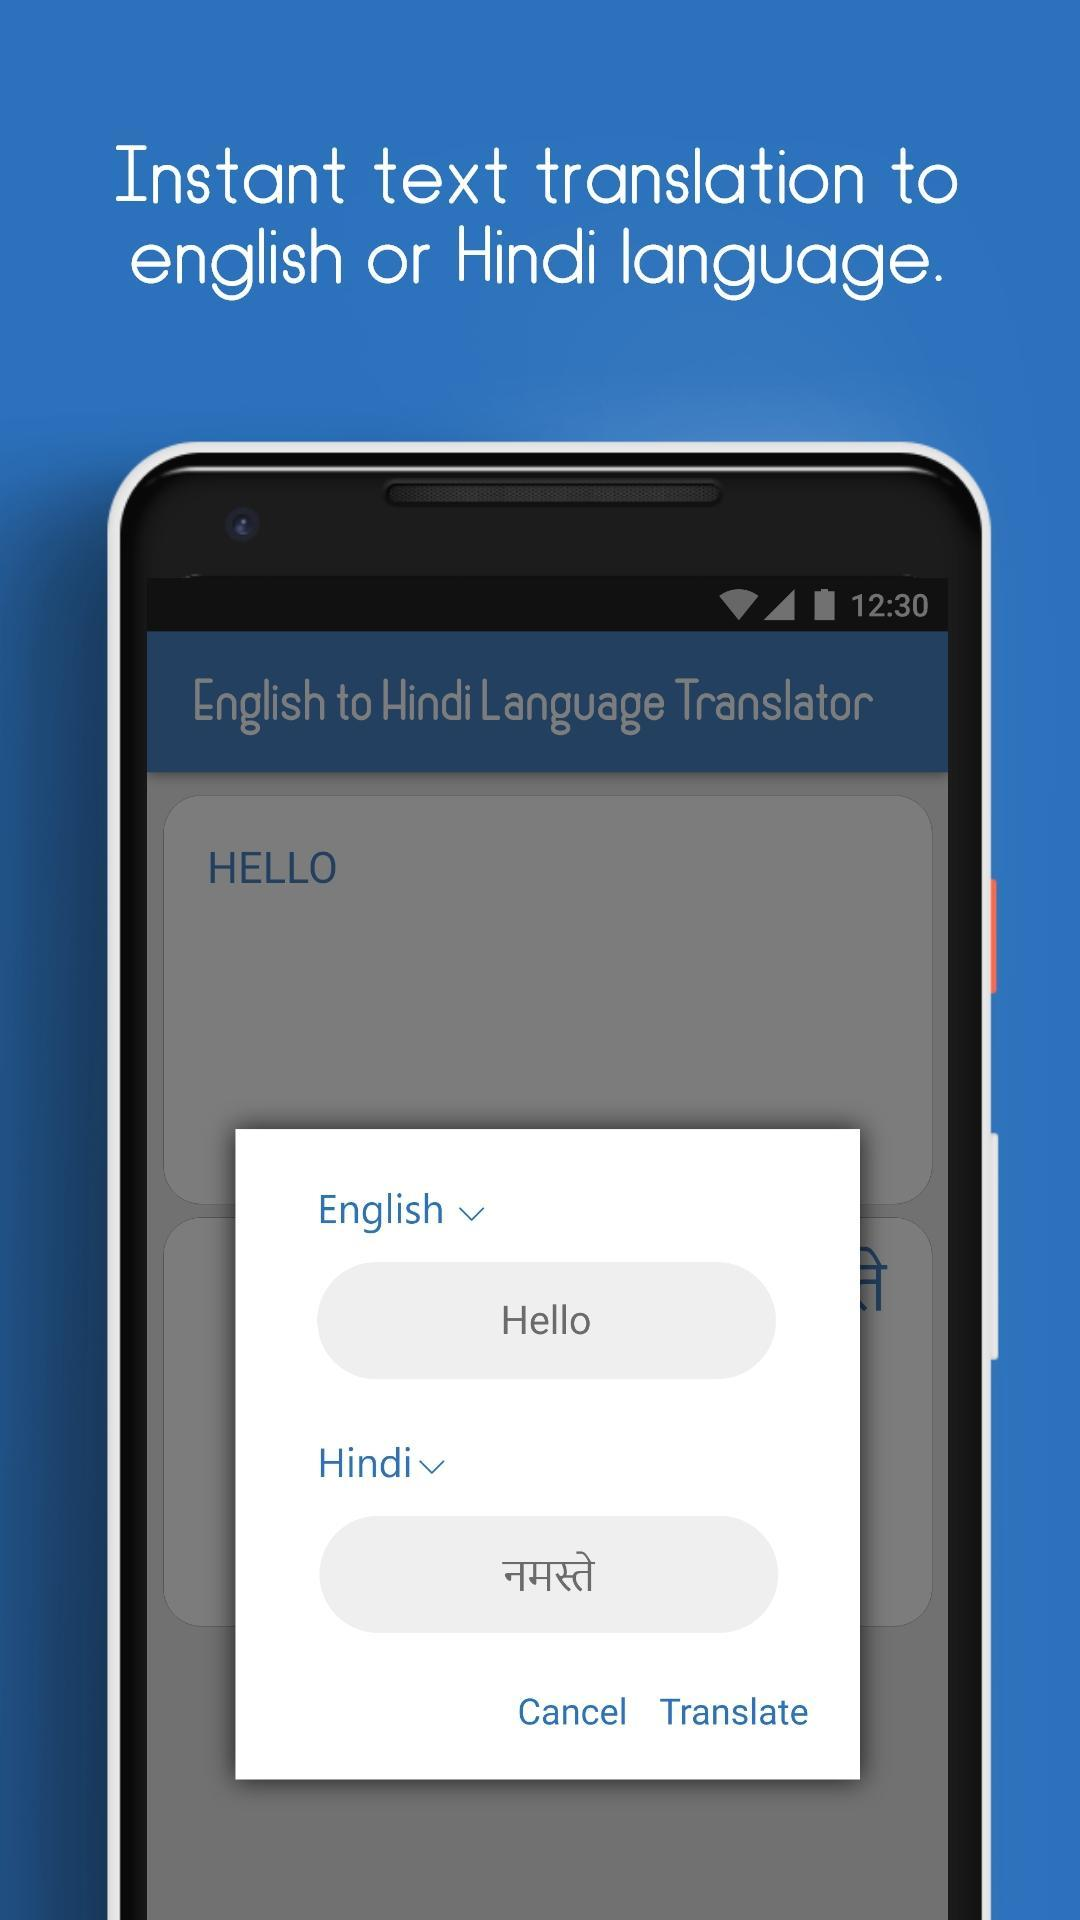 English to Hindi Language Translator for Android - APK Download